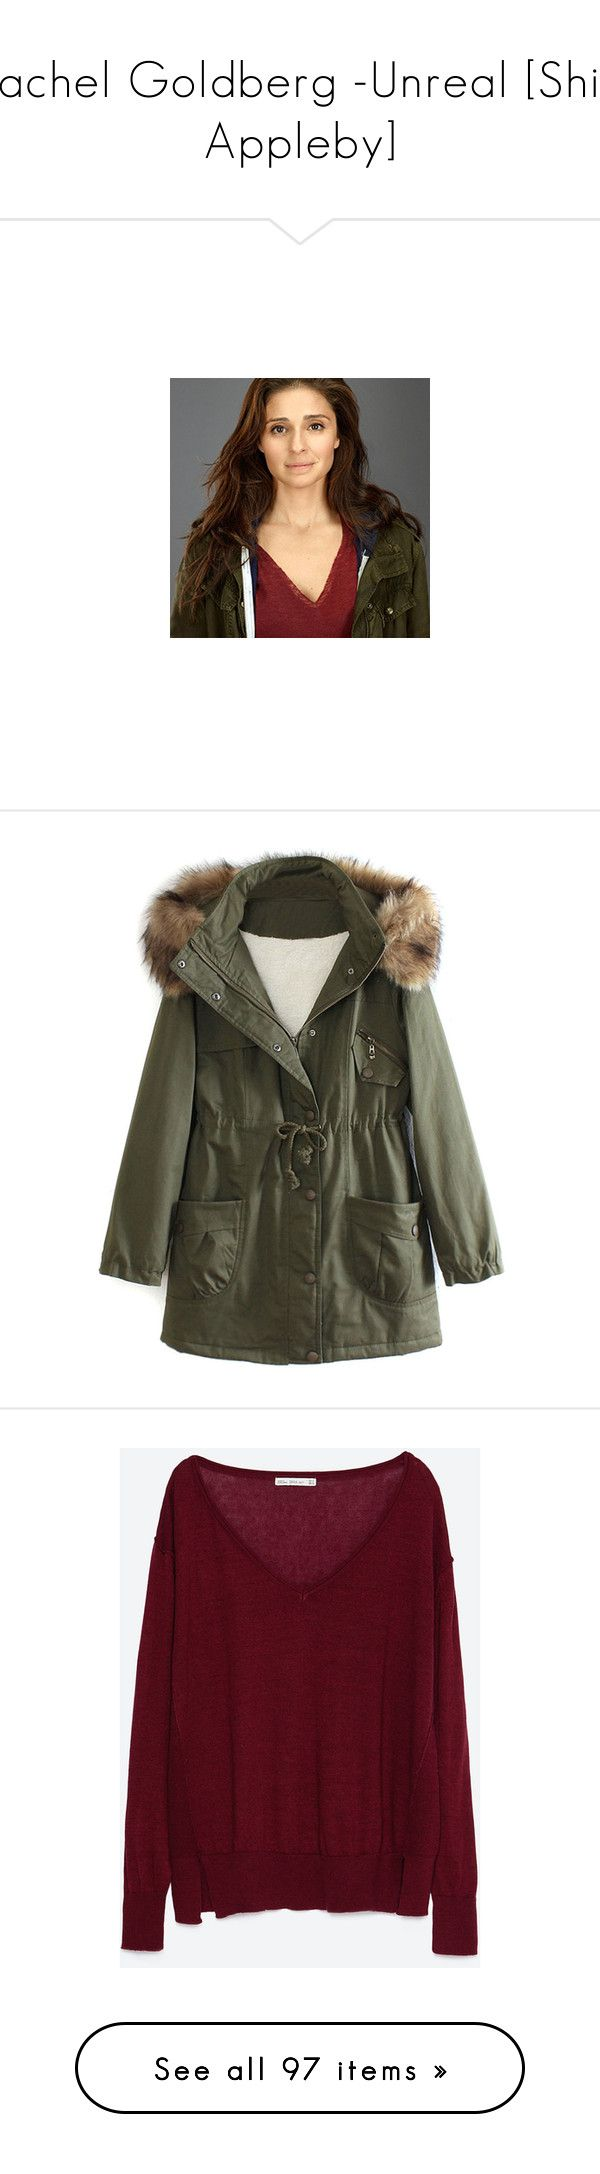 """Rachel Goldberg -Unreal [Shiri Appleby]"" by noamsharabi ❤ liked on Polyvore featuring outerwear, coats, jackets, tops, parka coat, faux fur hood parka, olive green parka coat, olive green coat, faux coat and sweaters"